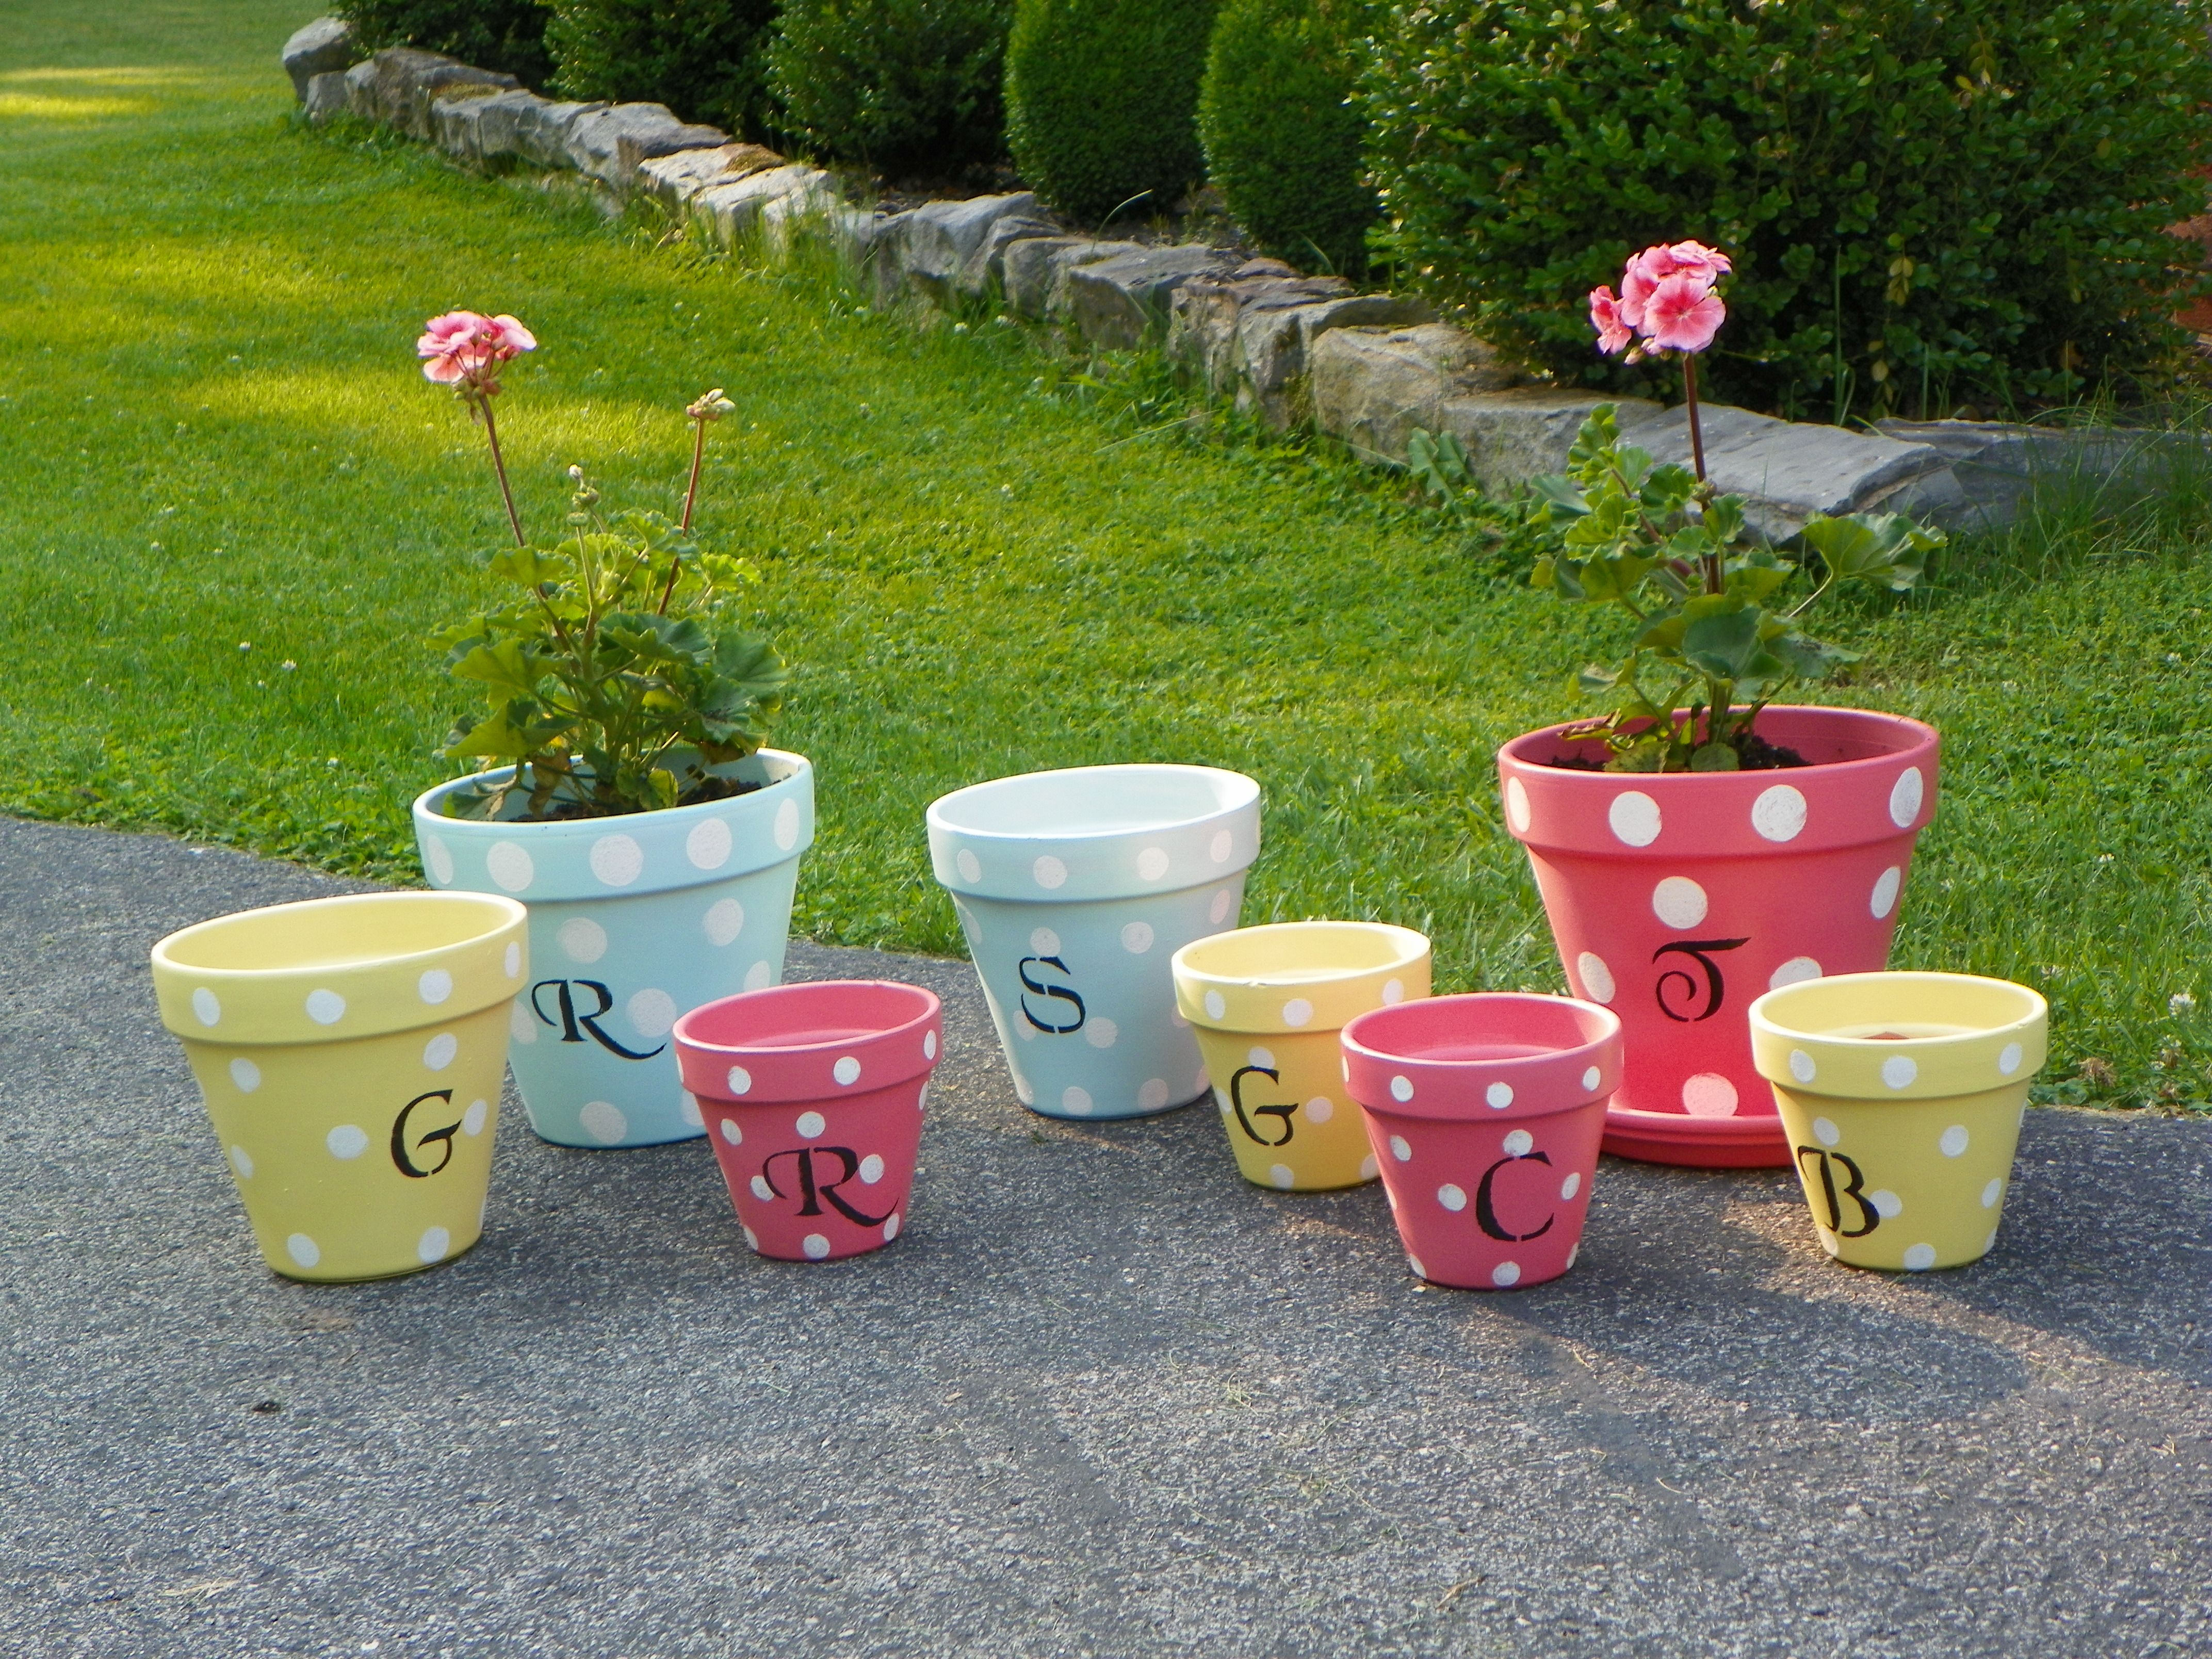 Cute And Colorful Flower Pots Outdoor Ideas Pinterest